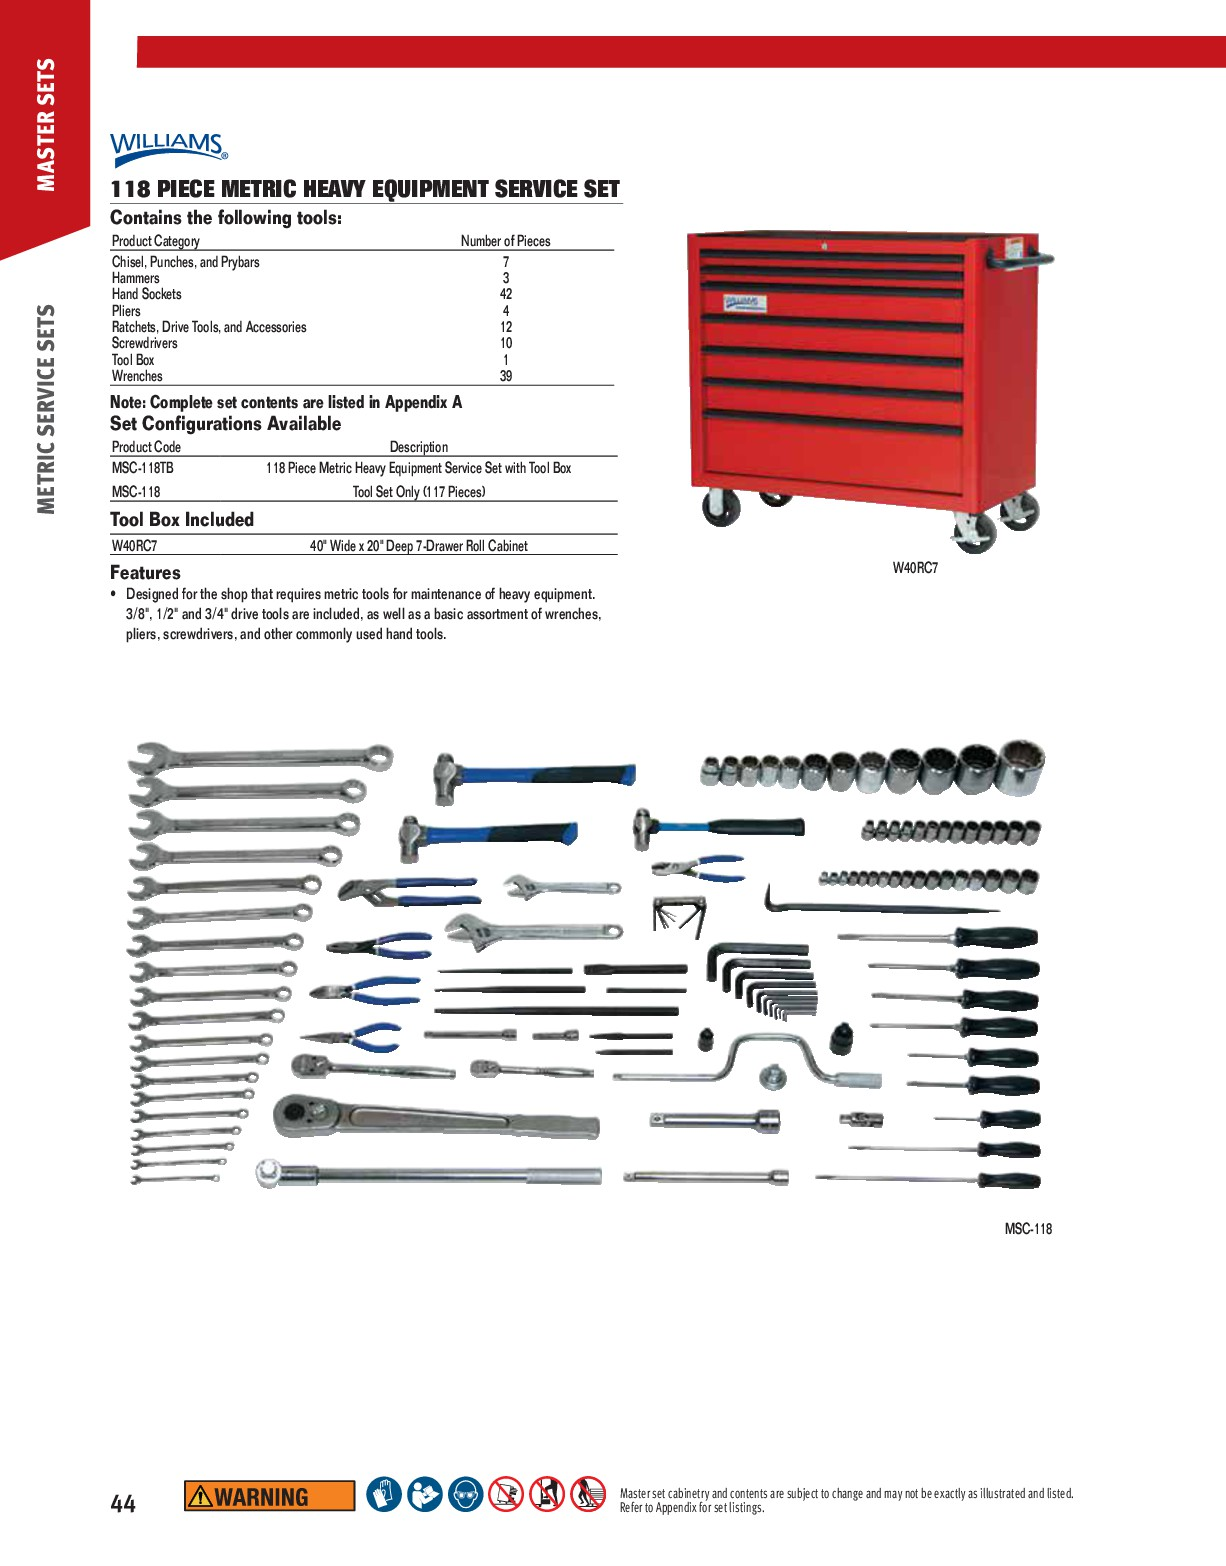 Williams MSC-118TB 118 Piece Metric Heavy Equipment - with Tool Box